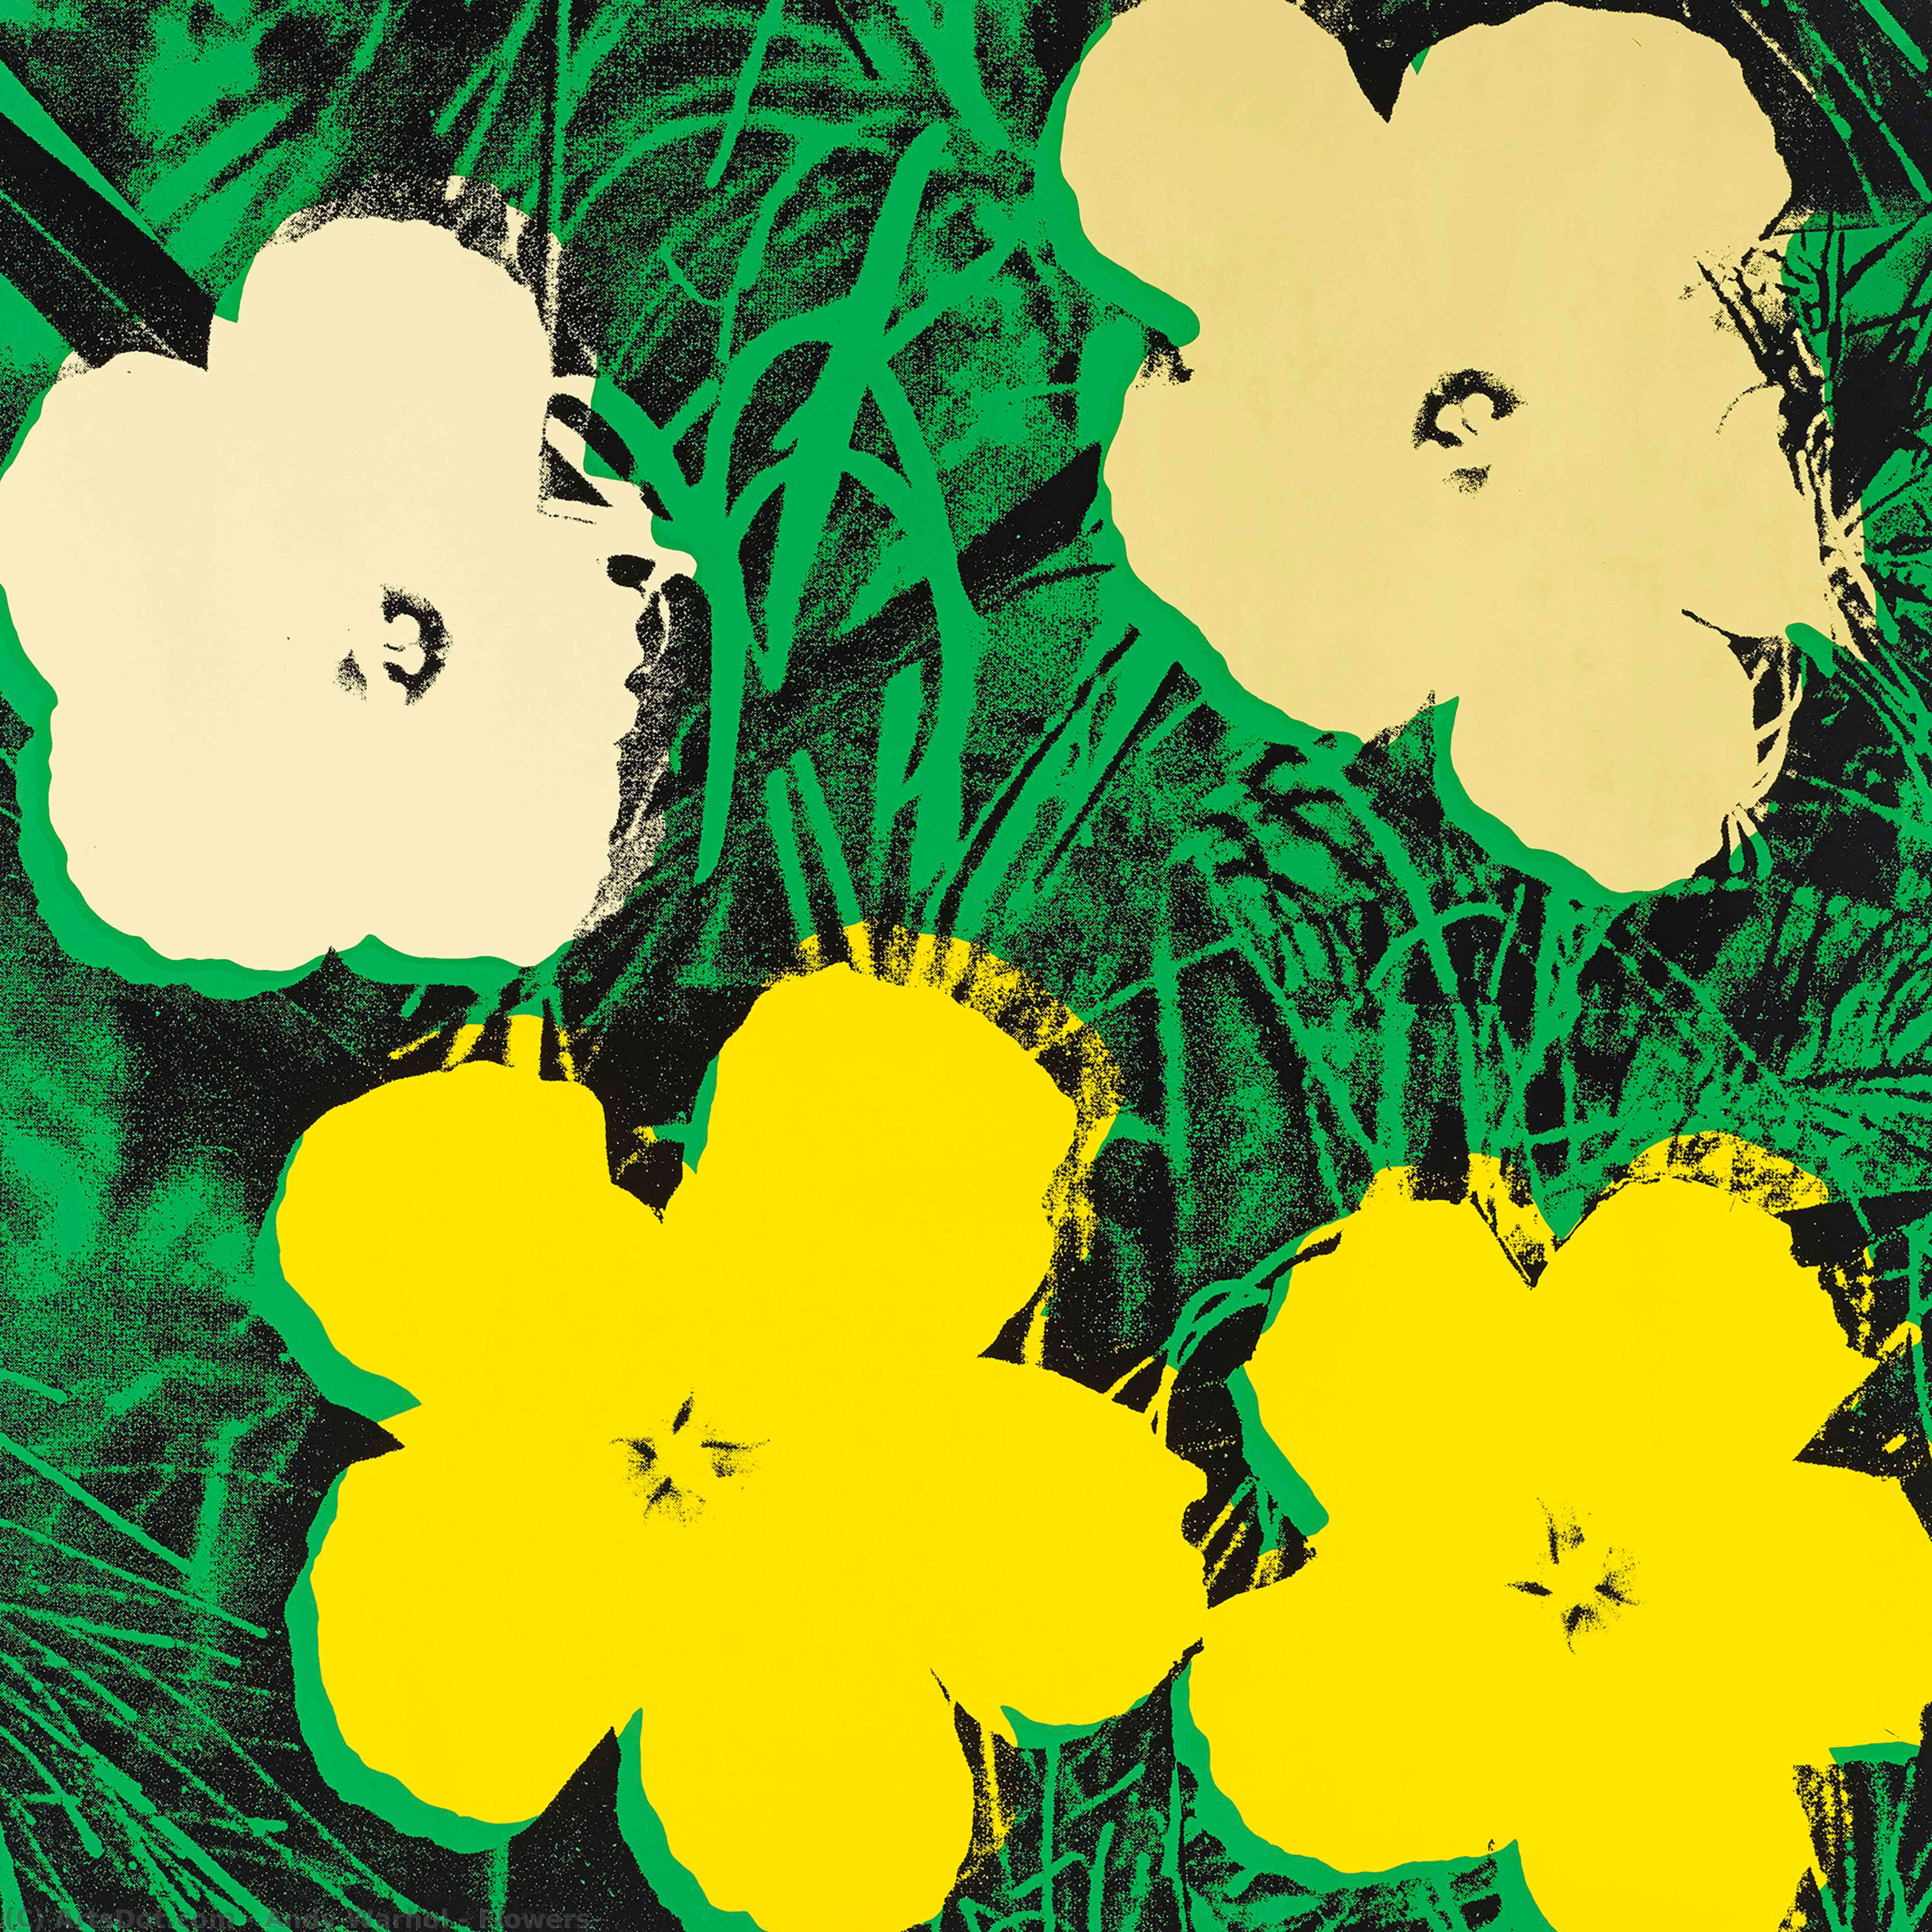 Wikioo.org - The Encyclopedia of Fine Arts - Painting, Artwork by Andy Warhol - Flowers